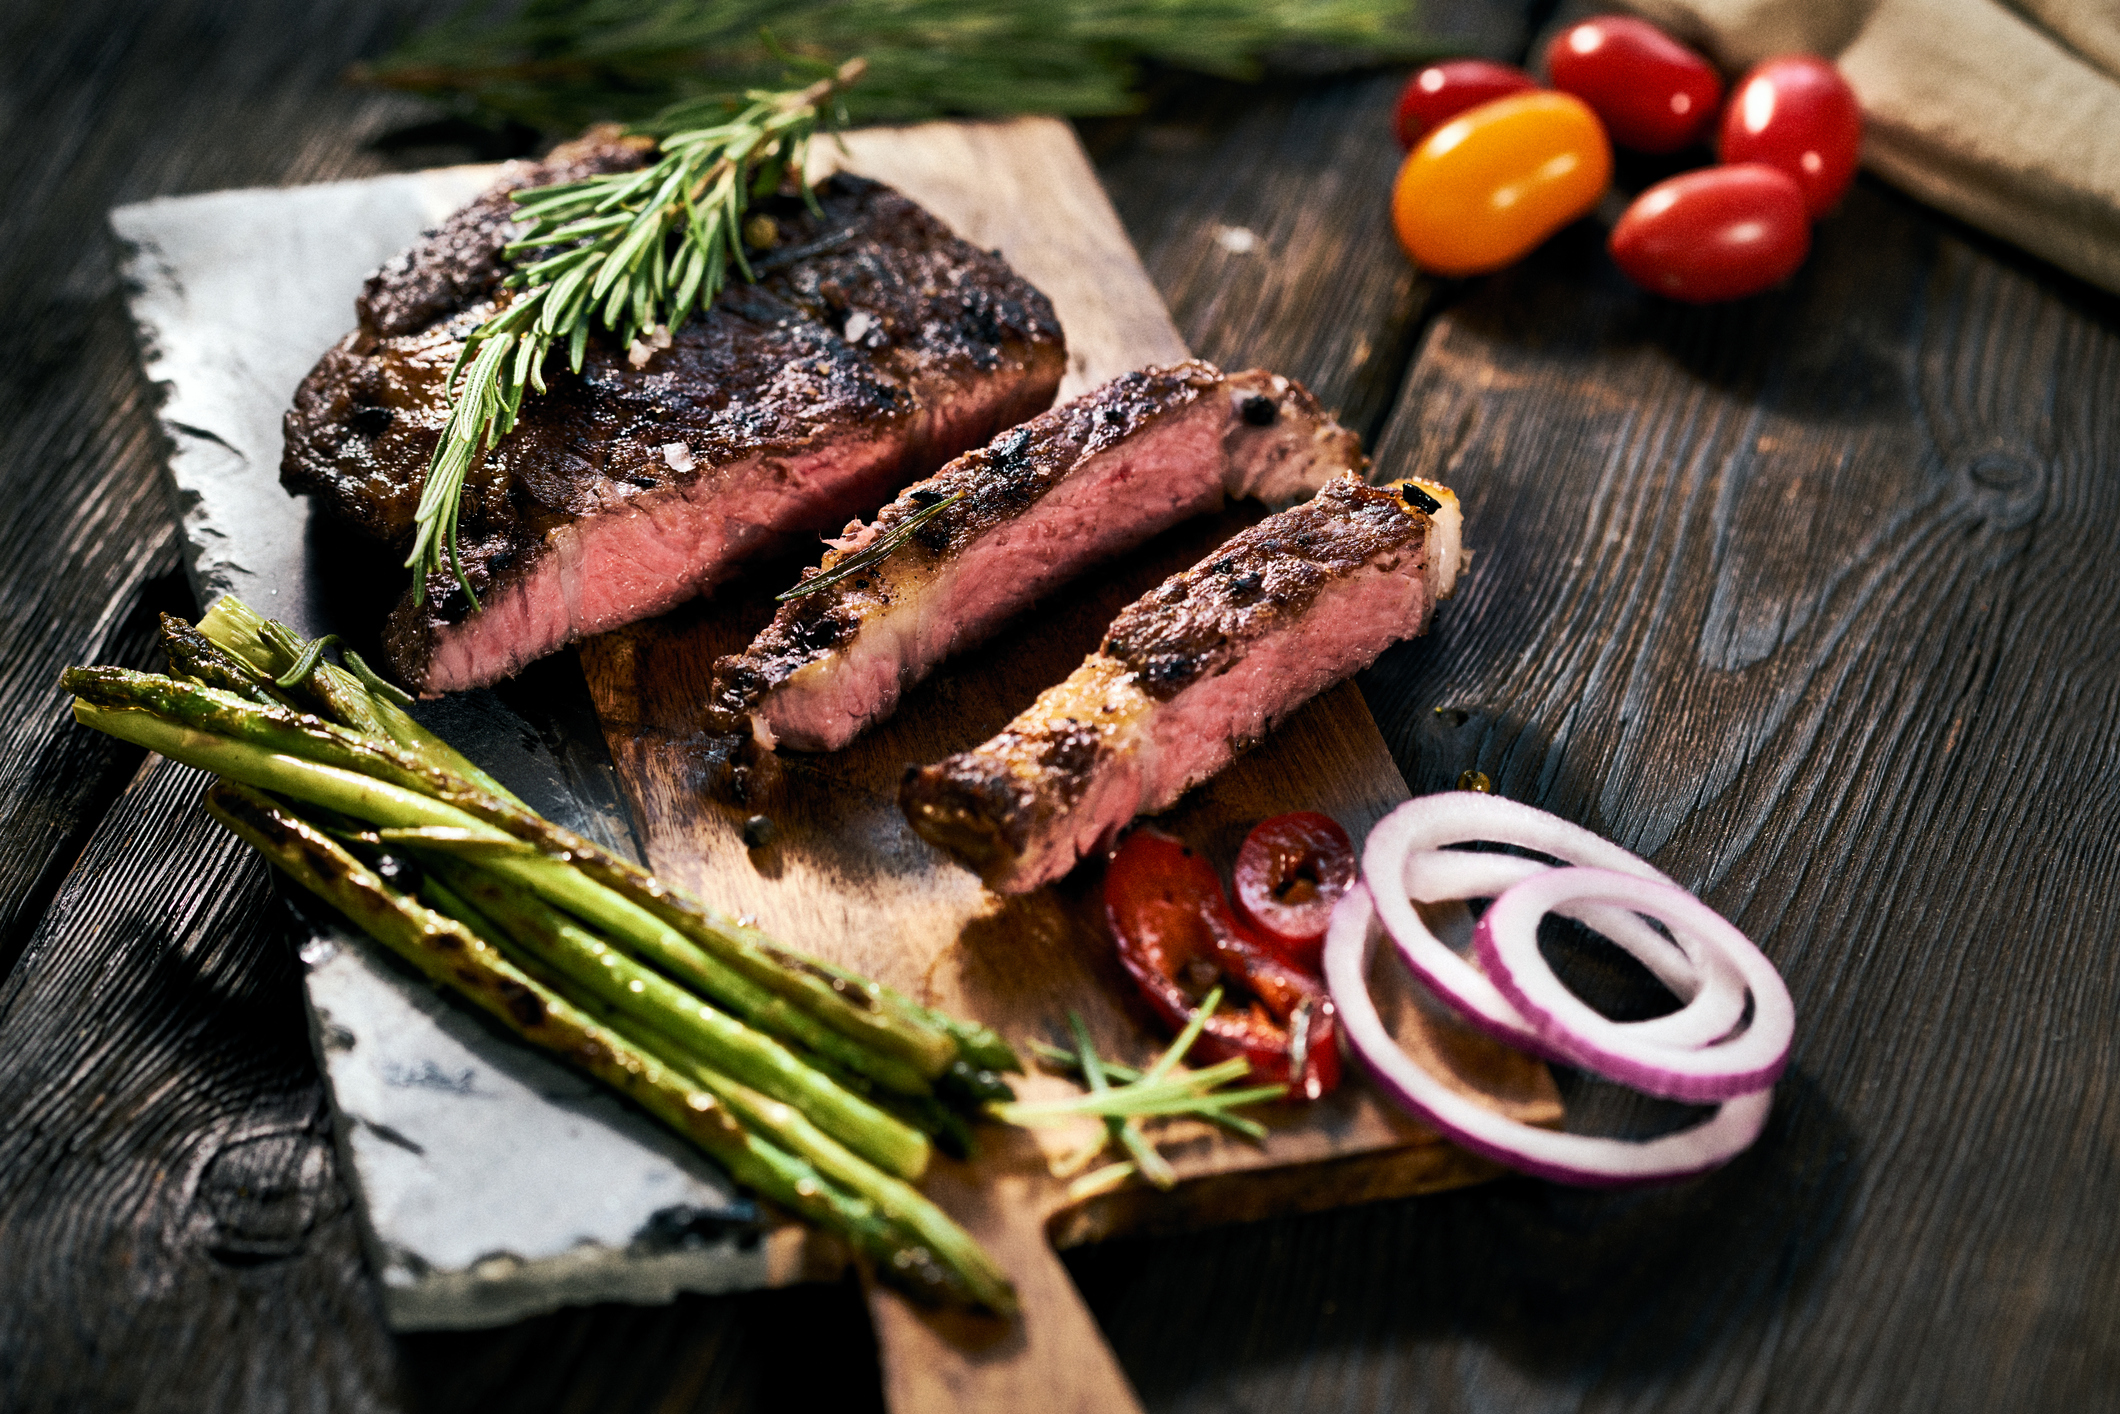 sliced steak on a cutting board with vegetables